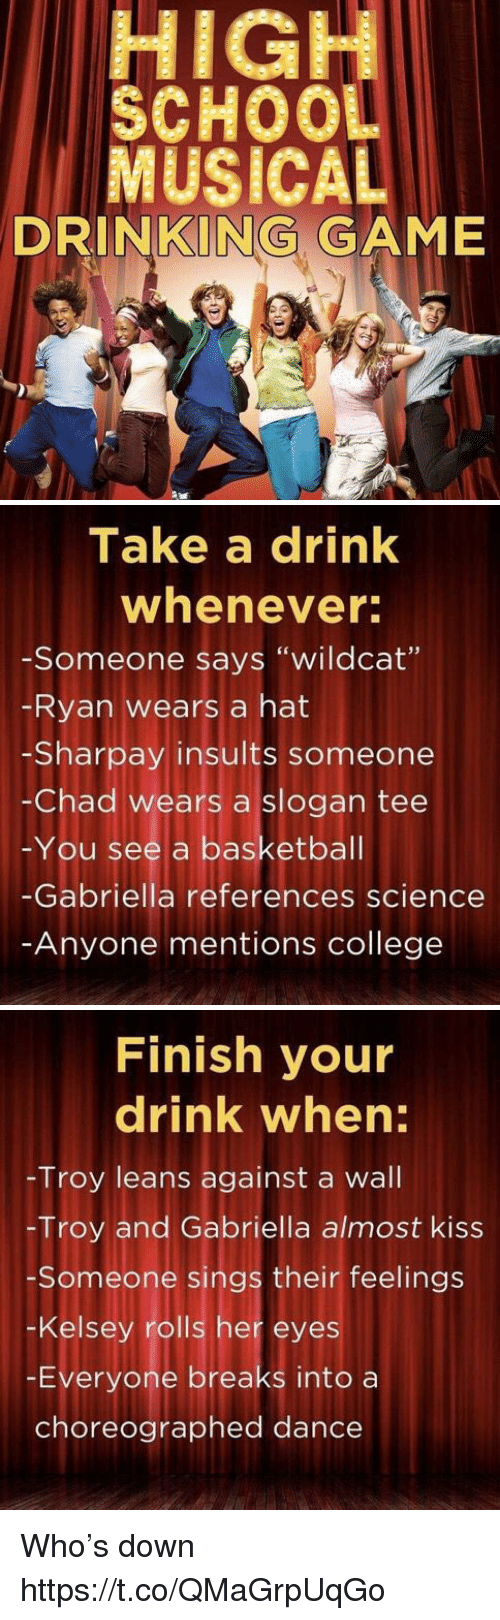 "Chads: HIGH  SCHOO  MUSICAL  DRINKING GAME   Take a drink  whenever  -Someone says ""wildcat""  Ryan wears a hat  -Sharpay insults someone  -Chad wears a slogan tee  -You see a basketbal  -Gabriella references science  Anyone mentions college   Finish your  drink when:  Troy leans against a wall  -Troy and Gabriella almost kiss  Someone sings their feelings  -Kelsey rolls her eyes  -Everyone breaks into a  choreographed dance Who's down https://t.co/QMaGrpUqGo"